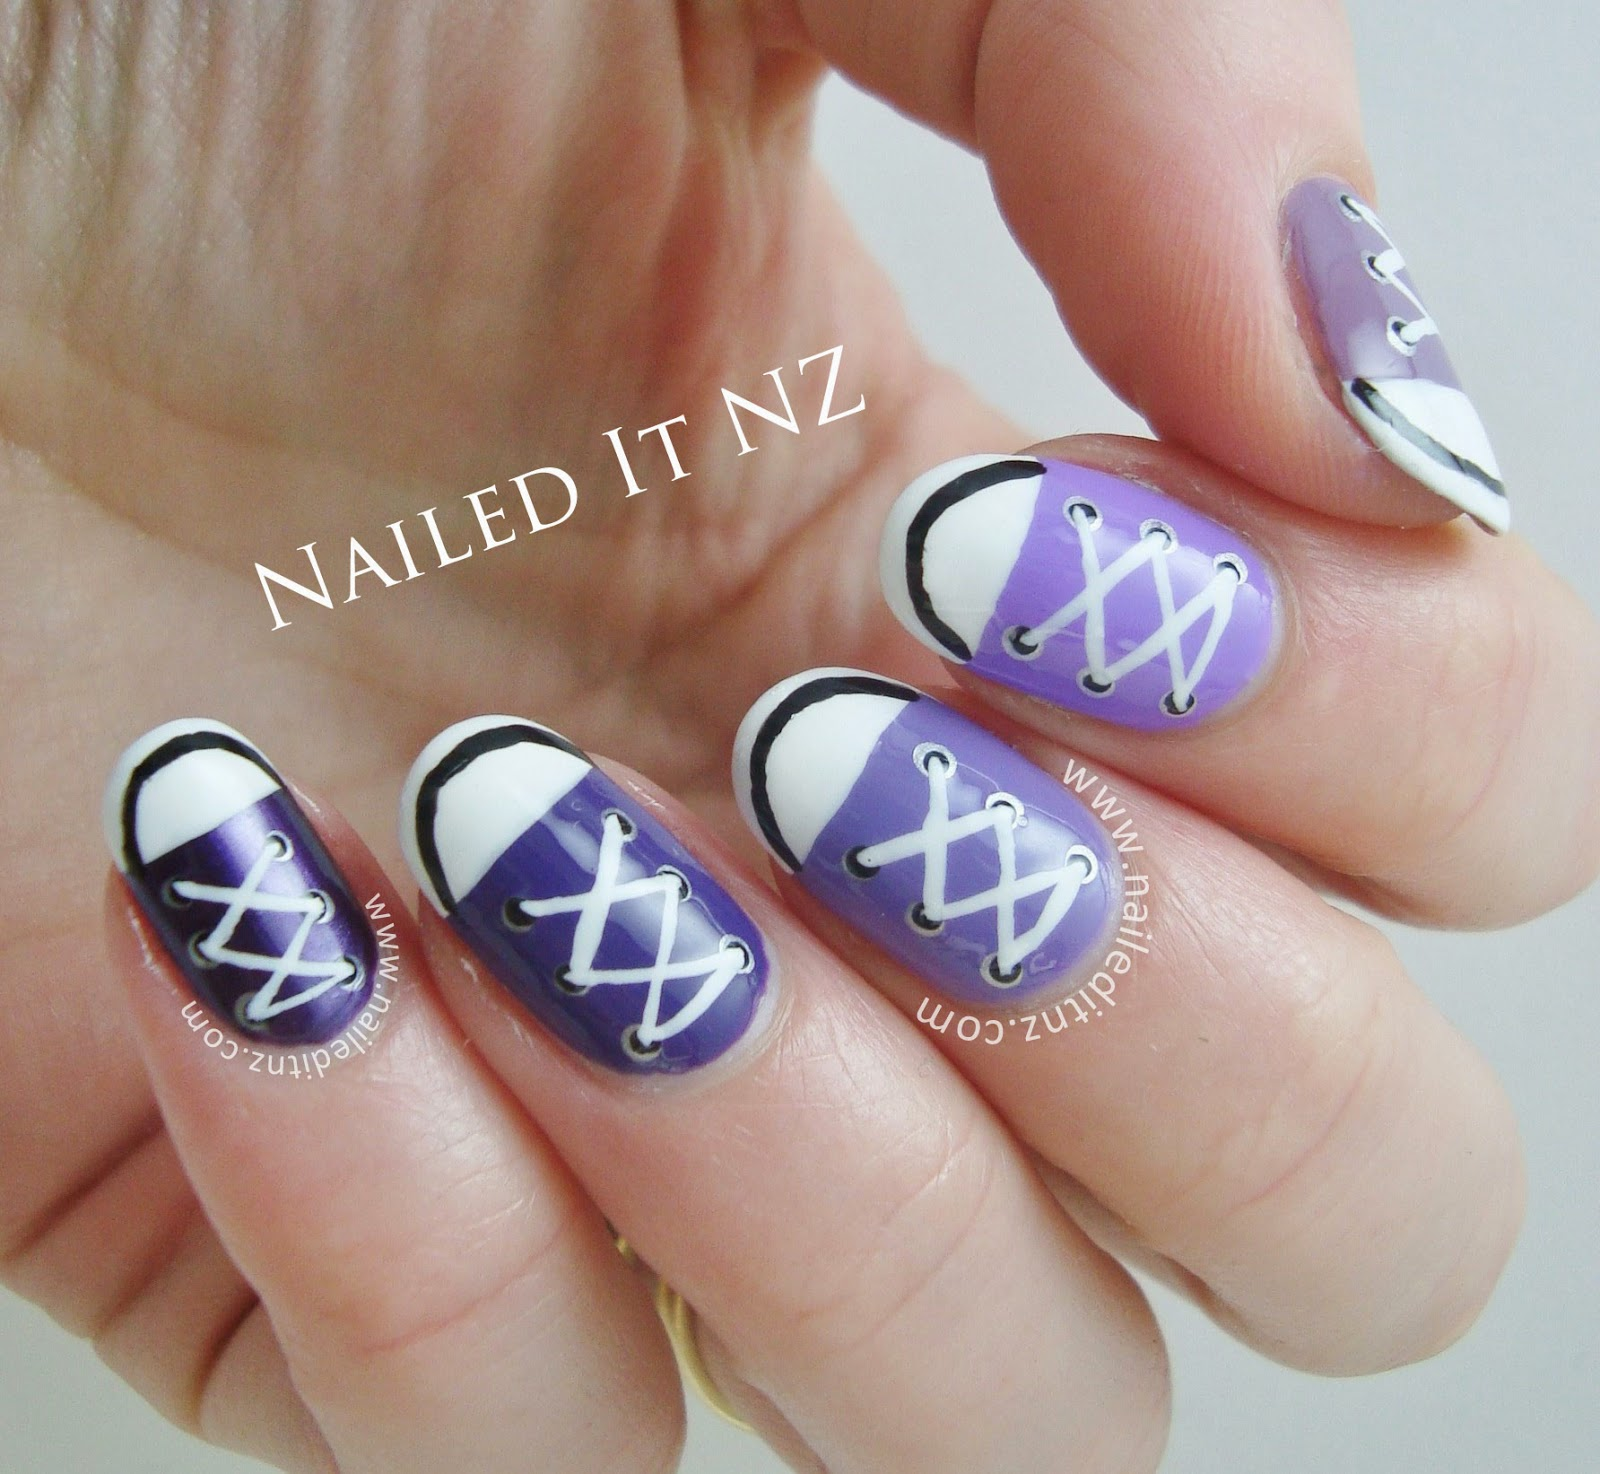 Converse nail art tutorial nailed it nz on youtube prinsesfo Images